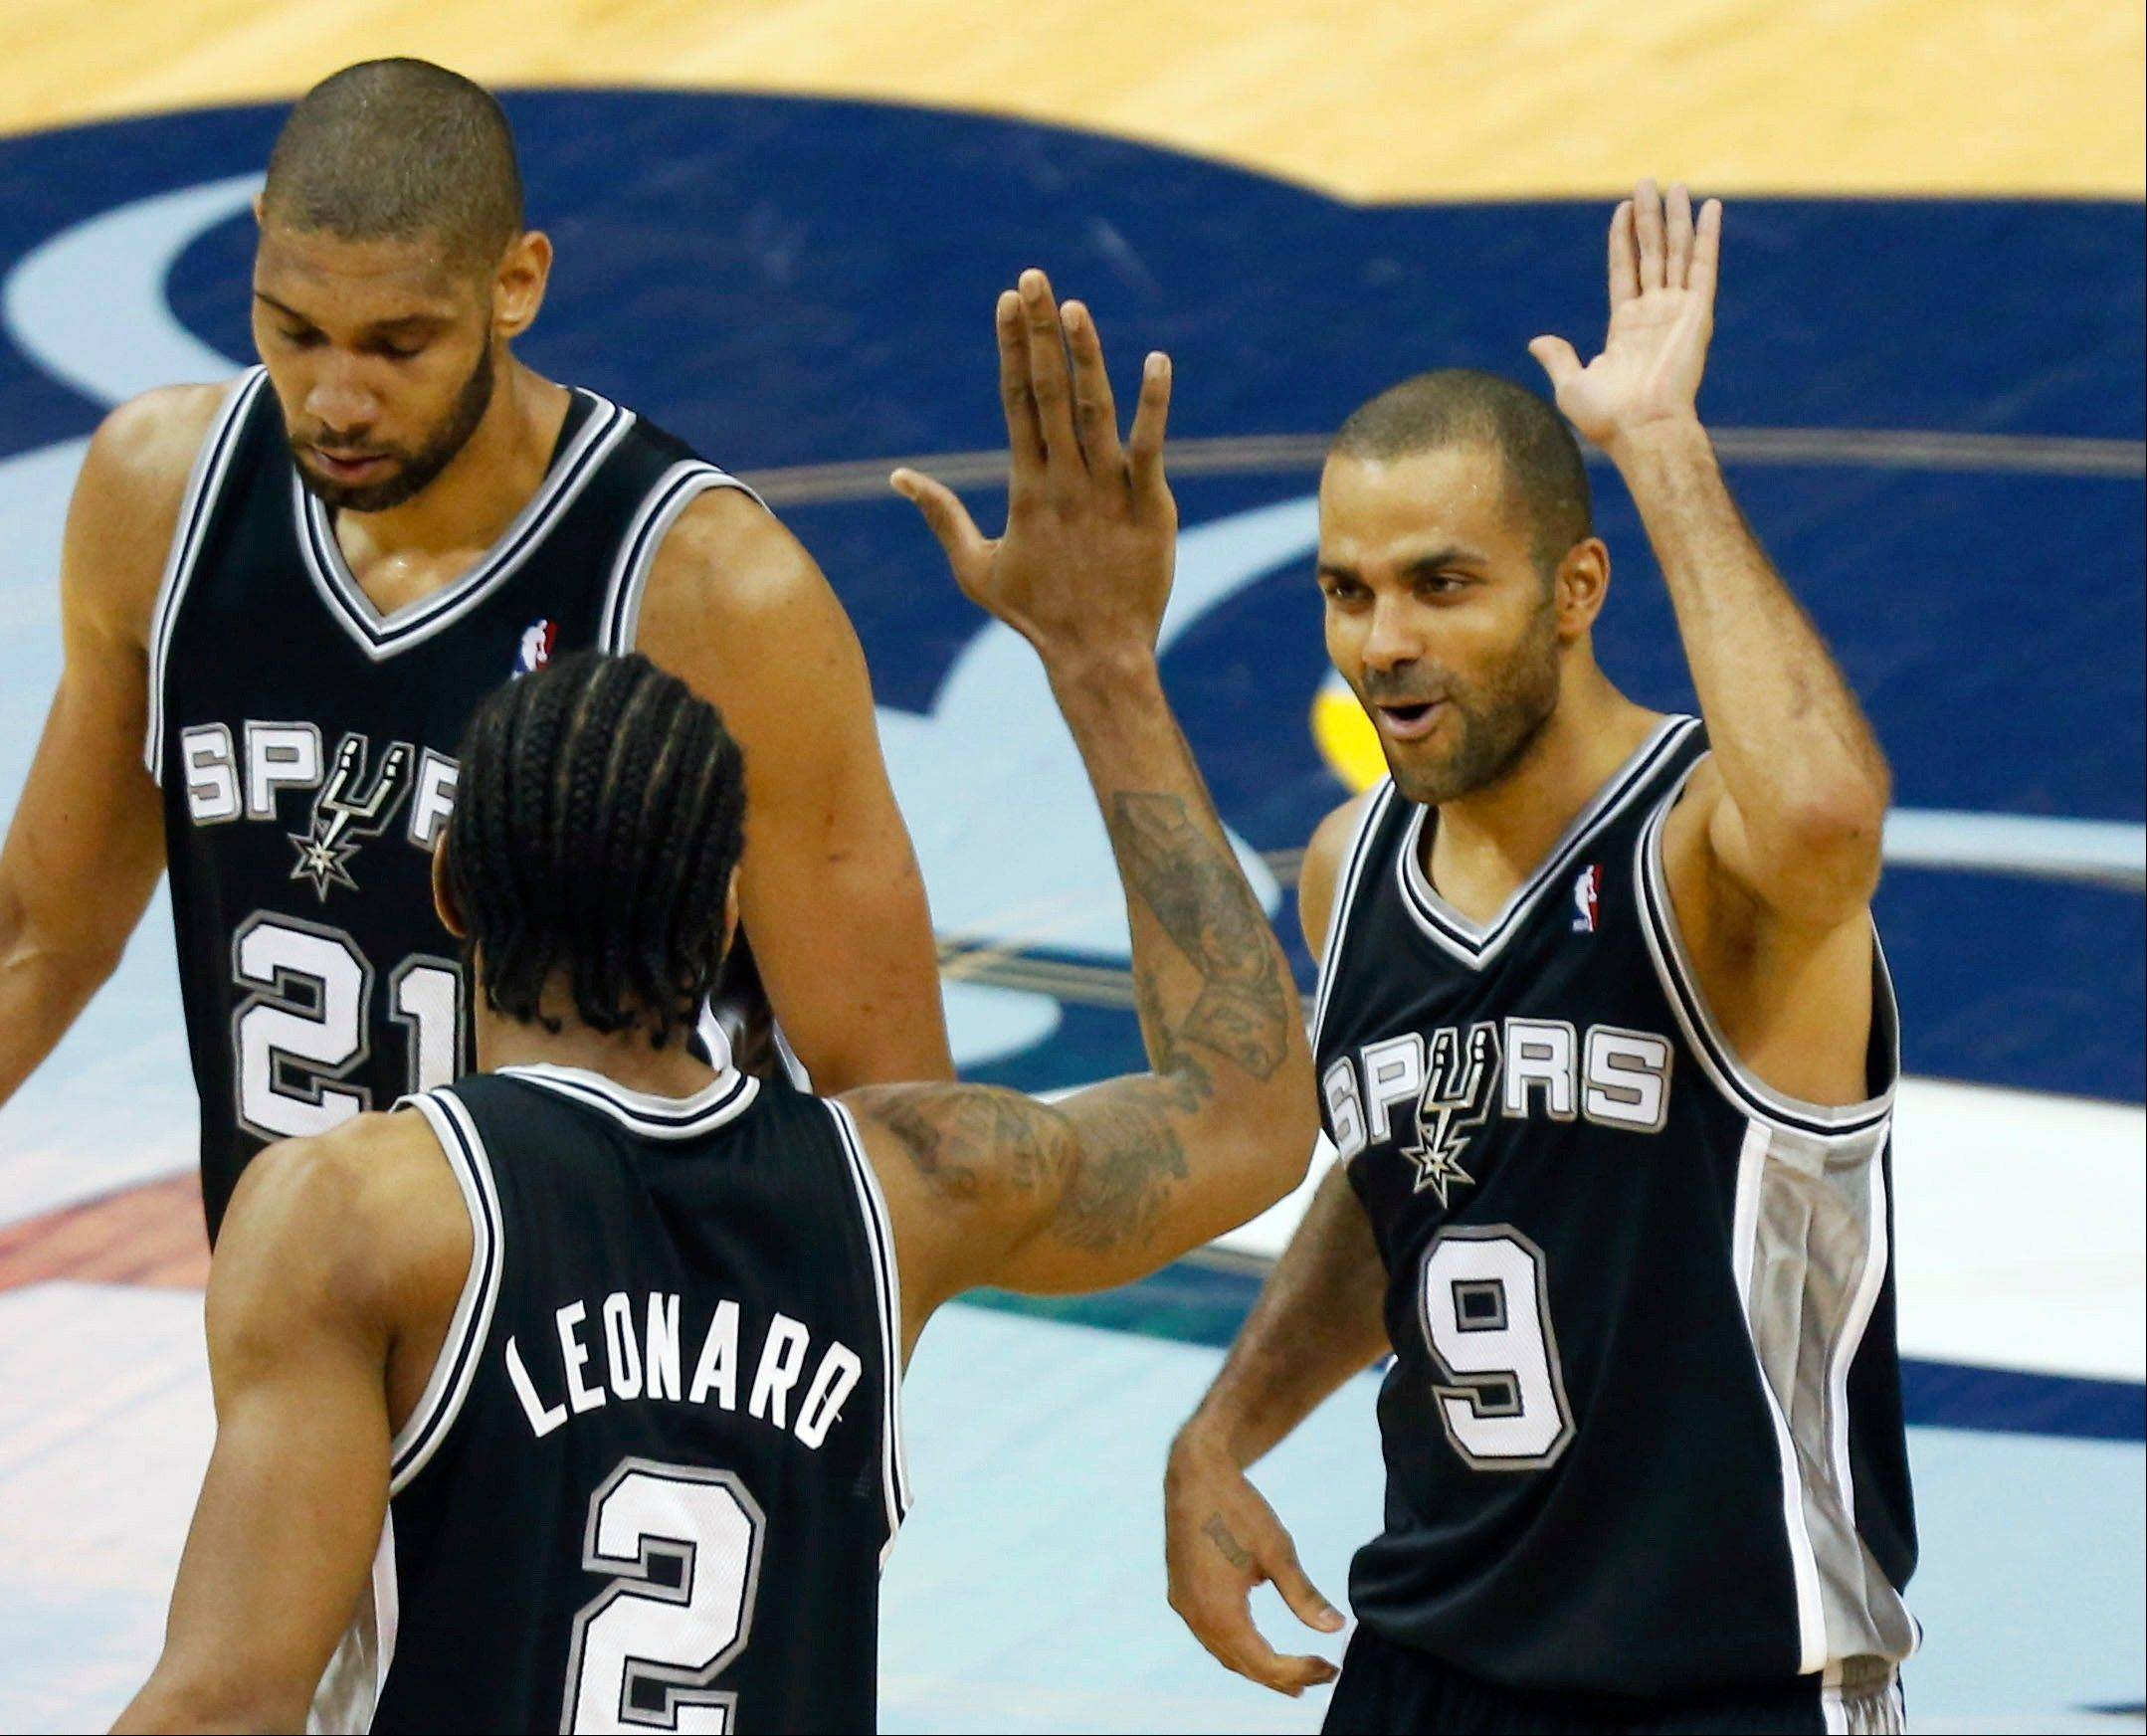 San Antonio Spurs' Kawhi Leonard (2) congratulates teammate Tony Parker (9), of France, after making a basket against the Memphis Grizzlies in overtime during Game 3 of the Western Conference finals NBA basketball playoff series, Saturday, May 25, 2013, in Memphis. The Spurs won 104-93 to lead the series 3-0. To the left is forward Tim Duncan (21). (AP Photo/Rogelio V. Solis)